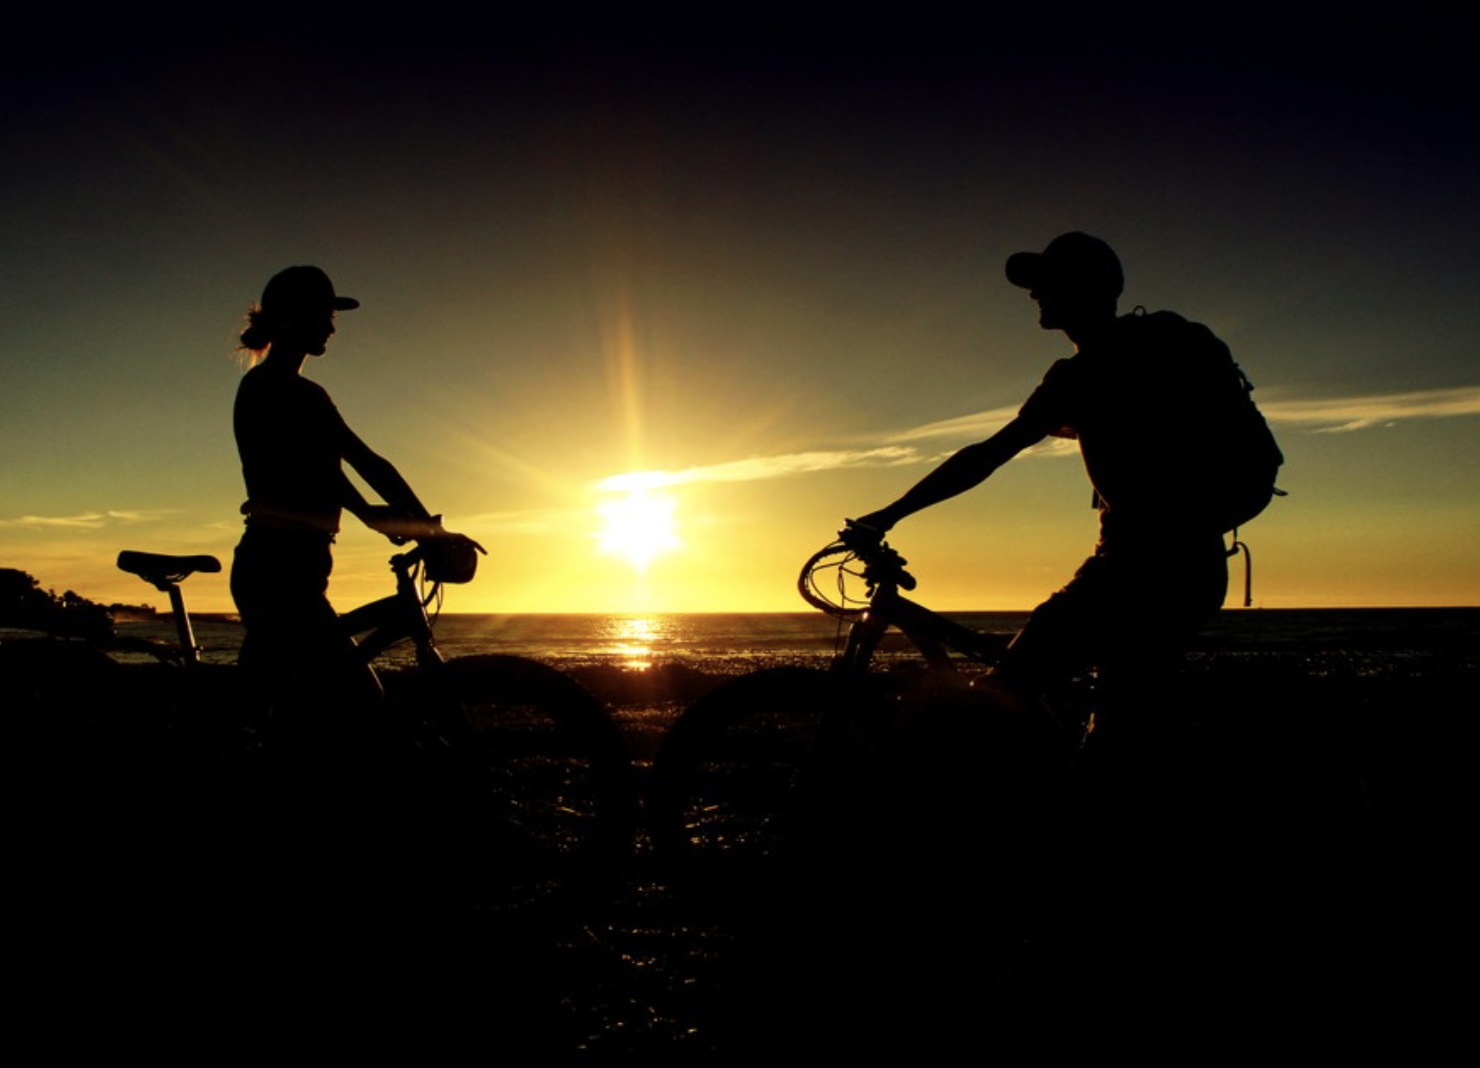 Sunset Bicycle Tours - October 1st, 2nd, 8th, 9th, 15th, 16th, and 23rd